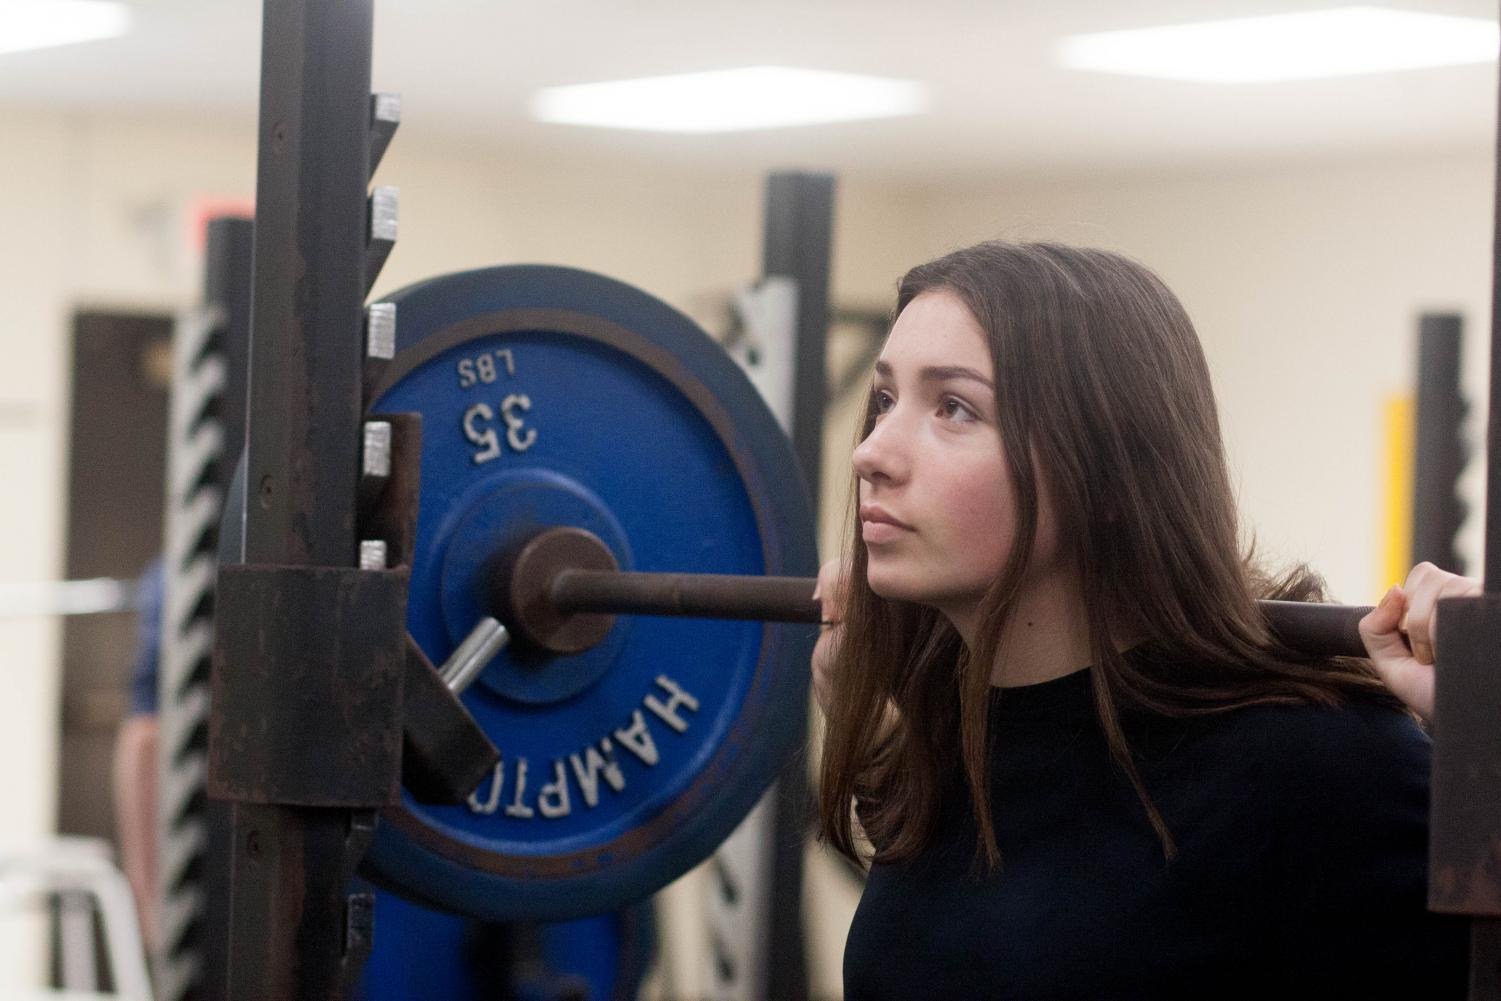 Alice Blanchard lifts weights in Weights and Conditioning class. Photo by Yearbook student, Ashley Piper.